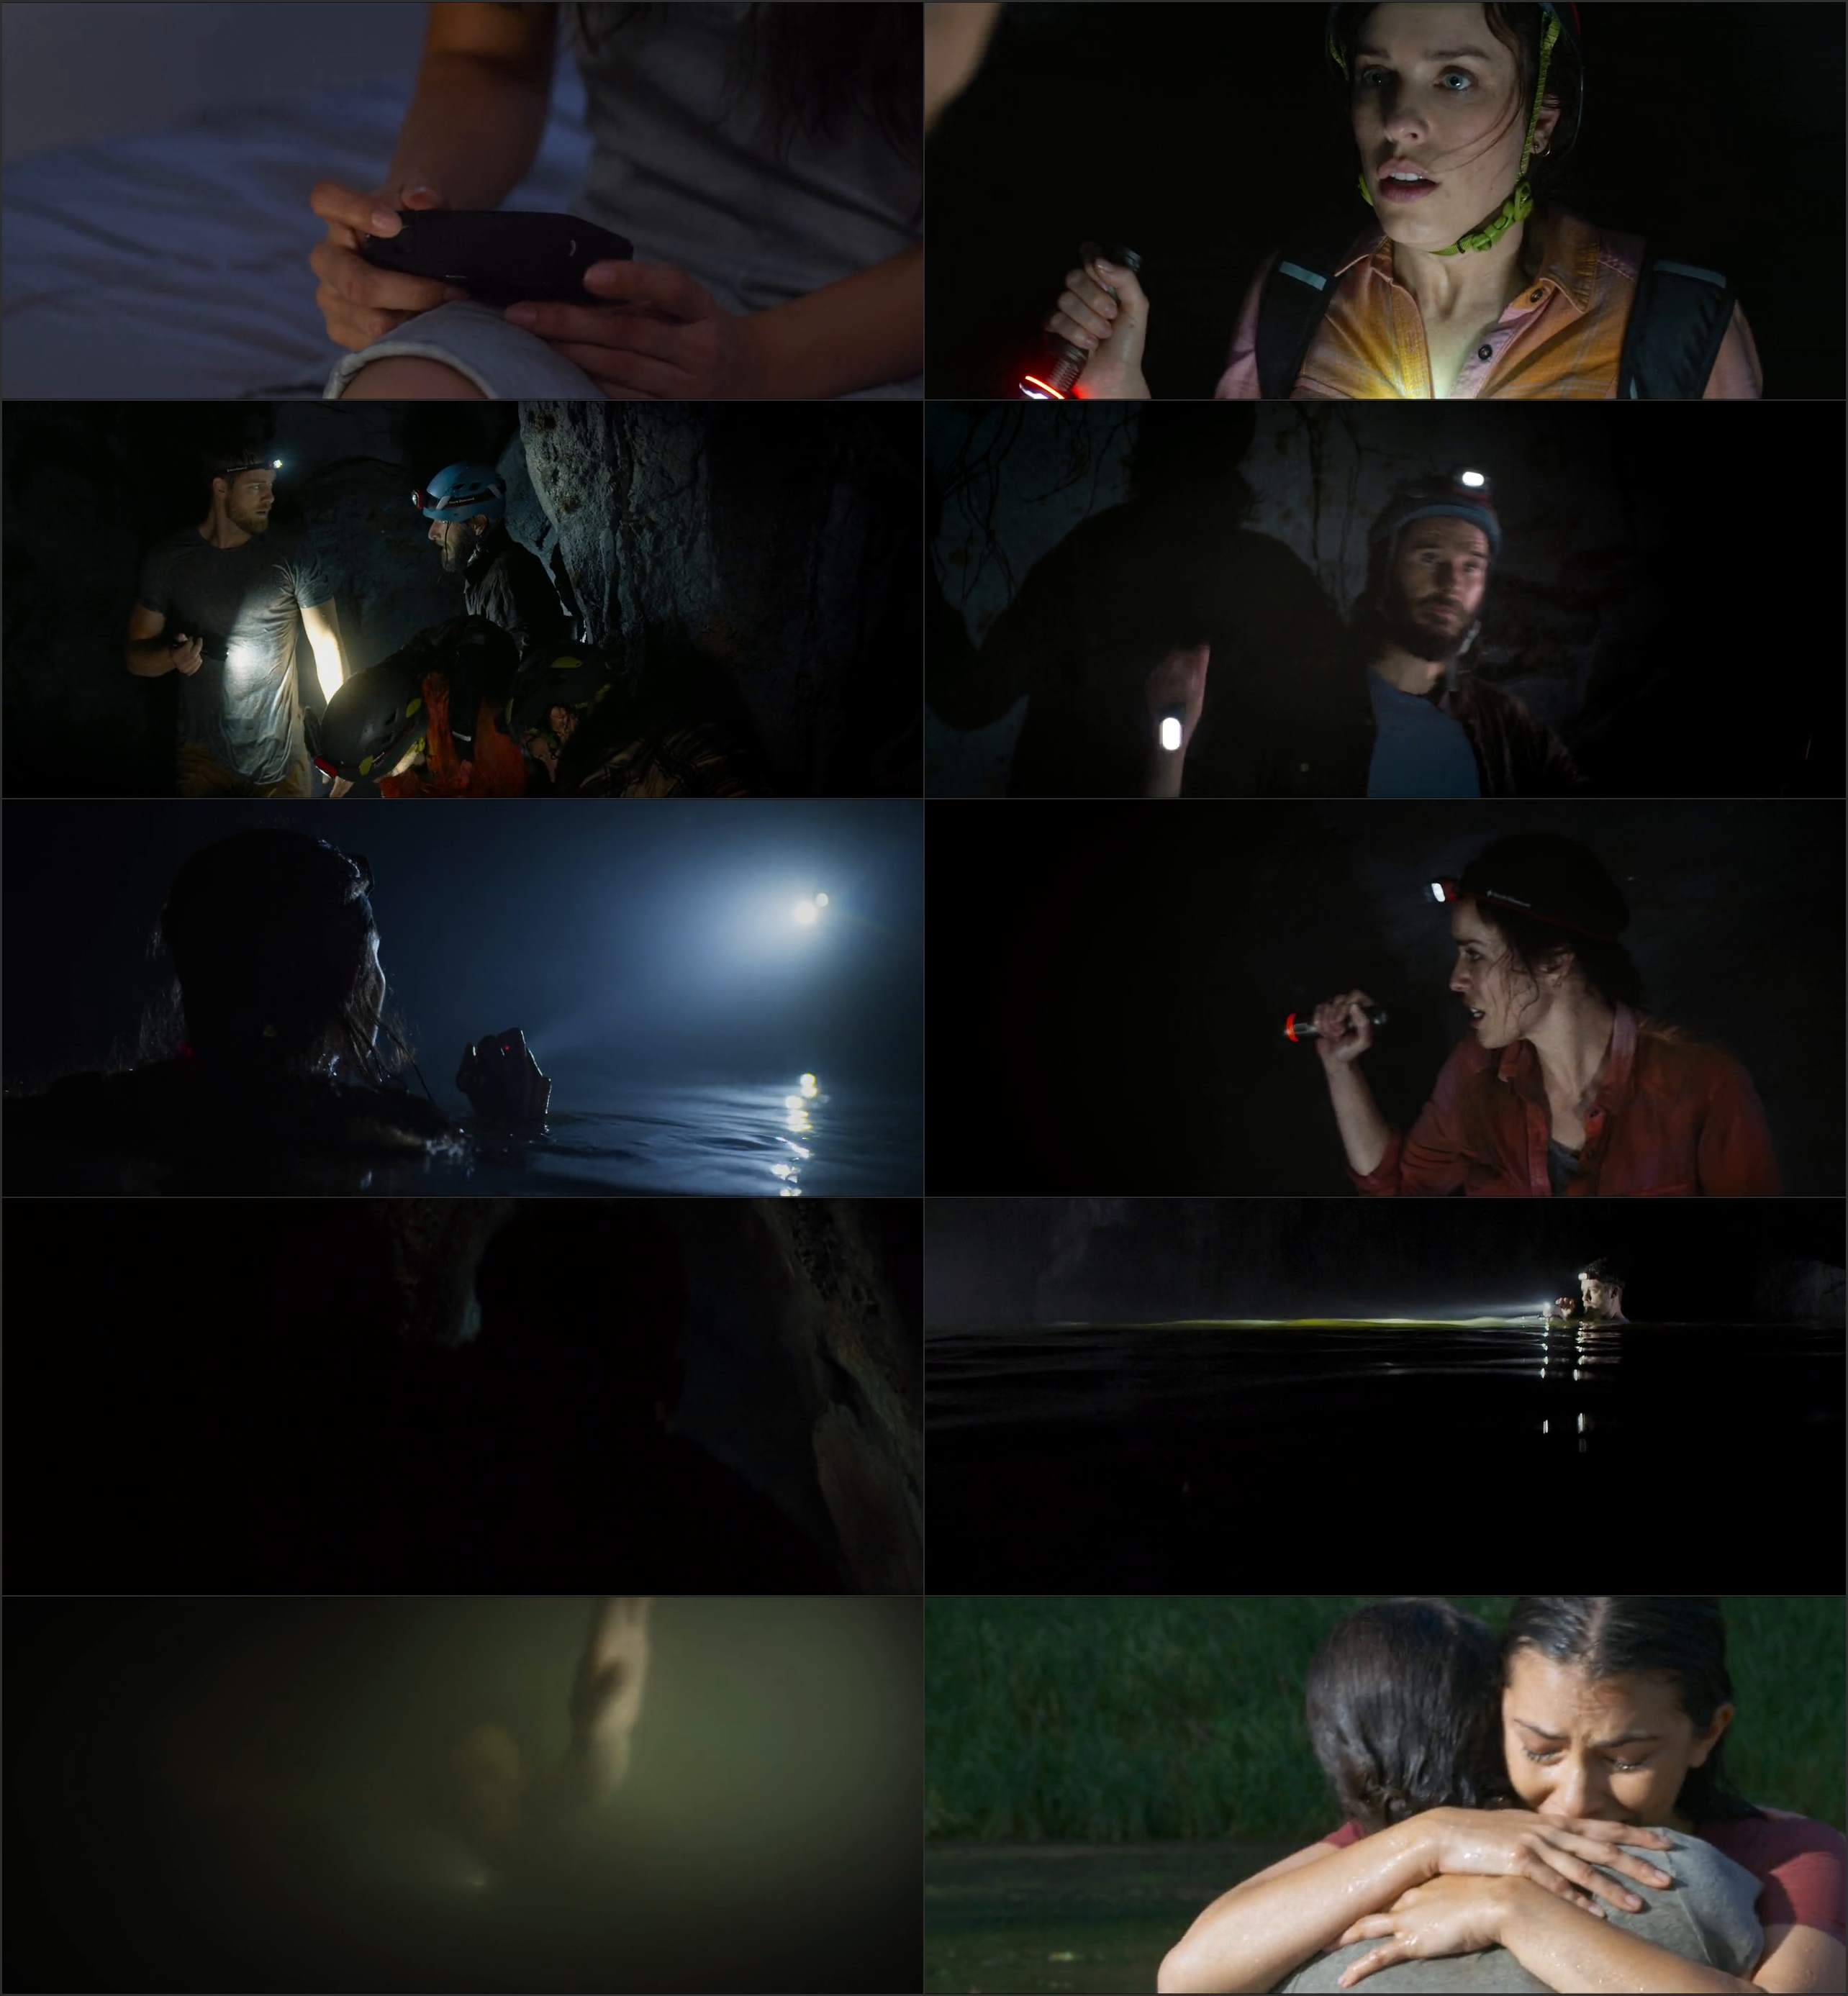 Screenshot Of Black-Water-Abyss-2020-WEB-DL-Dual-Audio-Hindi-And-English-Hollywood-Hindi-Dubbed-Full-Movie-Download-In-Hd